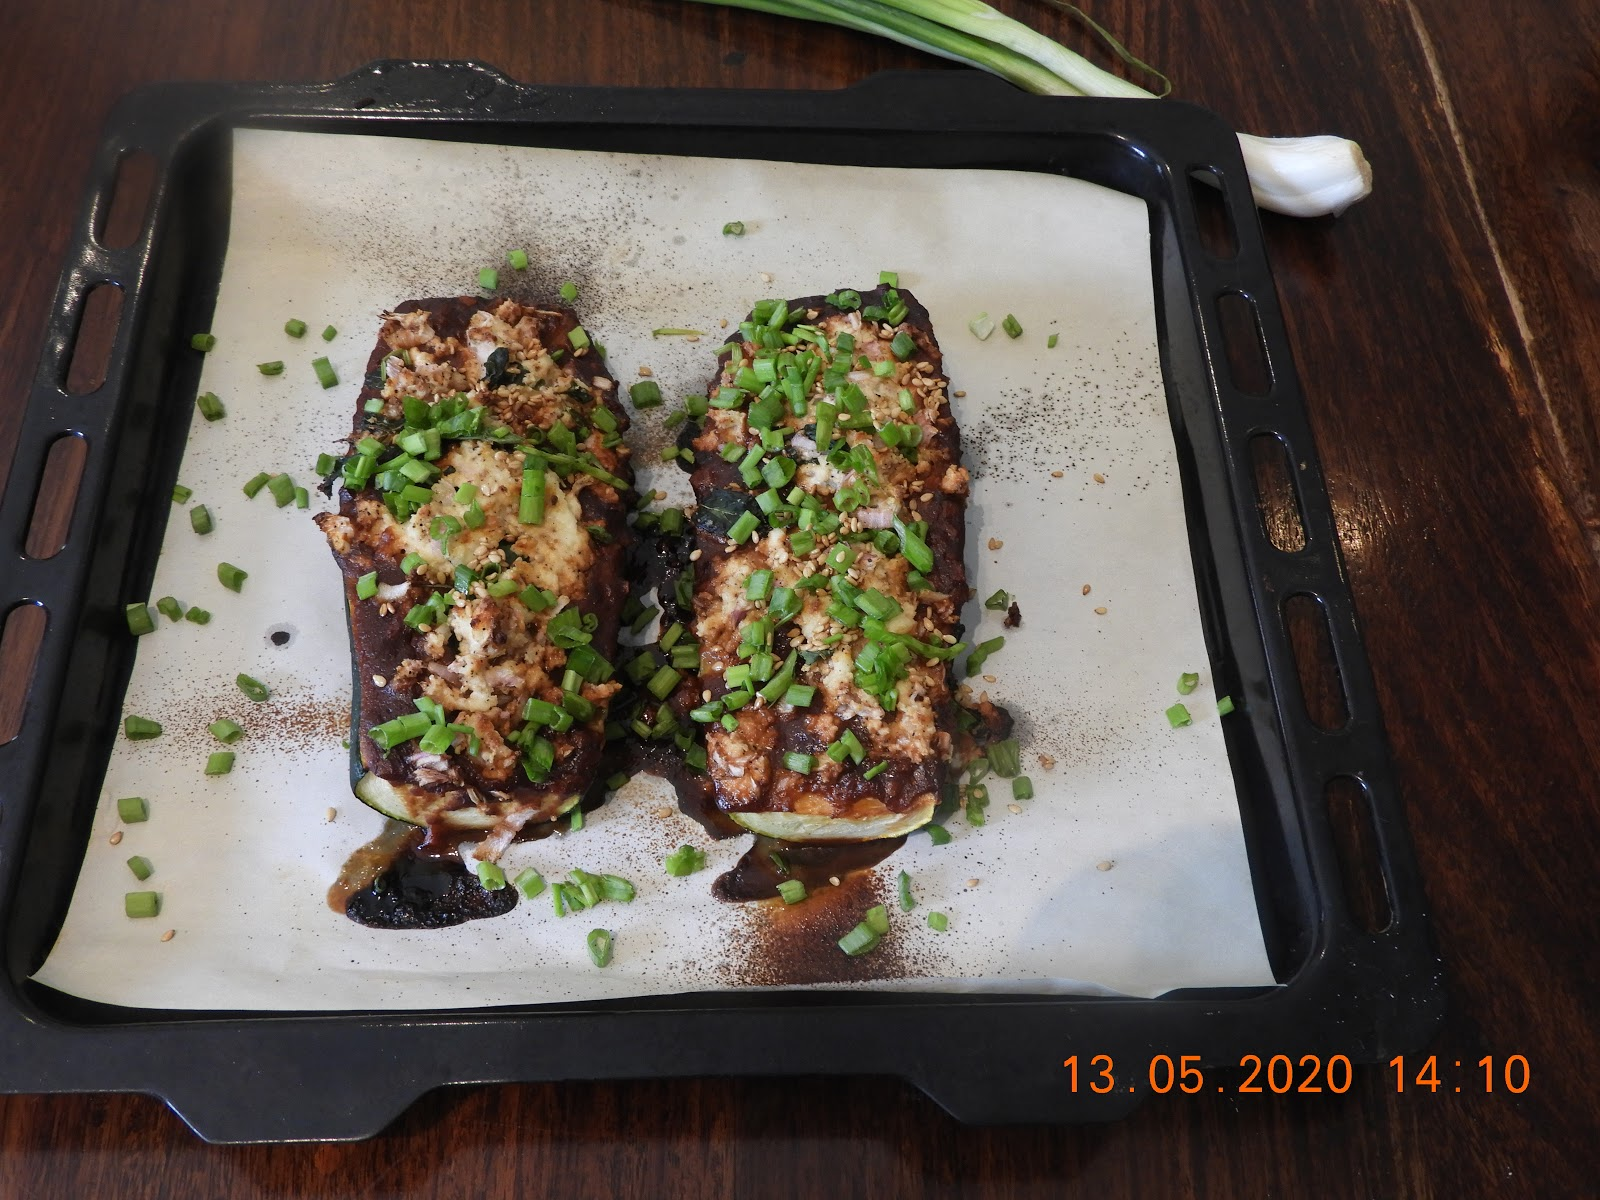 Cottage Zucchini Marinated in Miso Sauce - Asian Cuisine